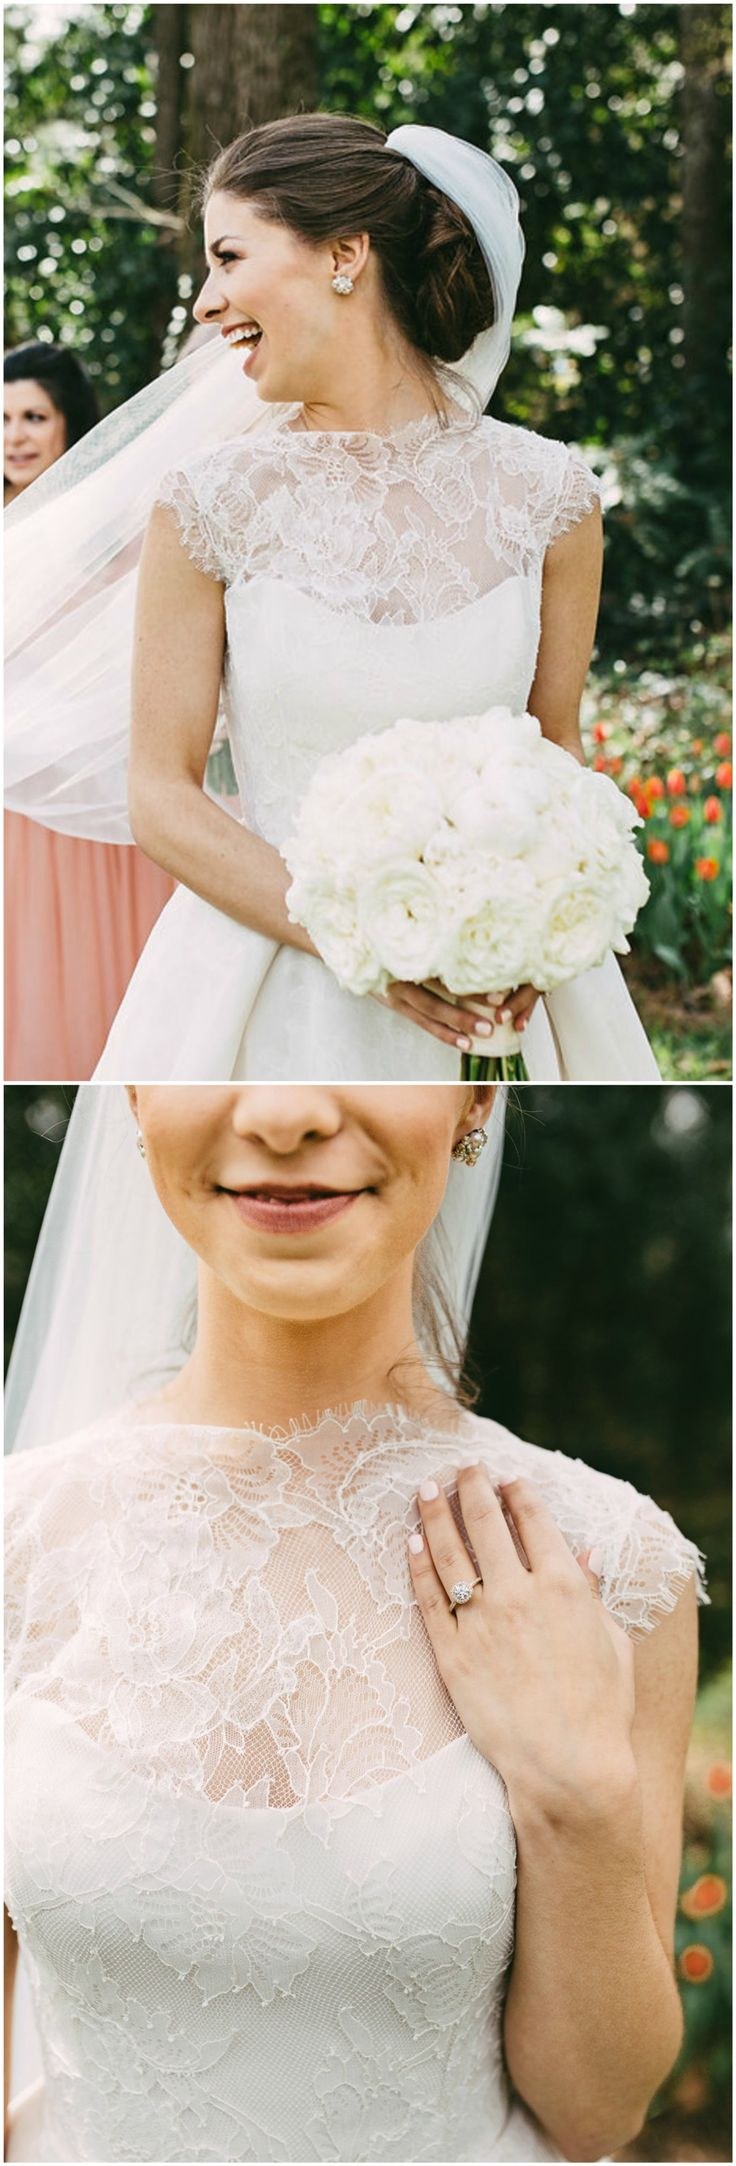 Traditional wedding dress, veil, classic bridal fashion, high-neck lace, up-do hairstyle // Kelly Ginn Photography